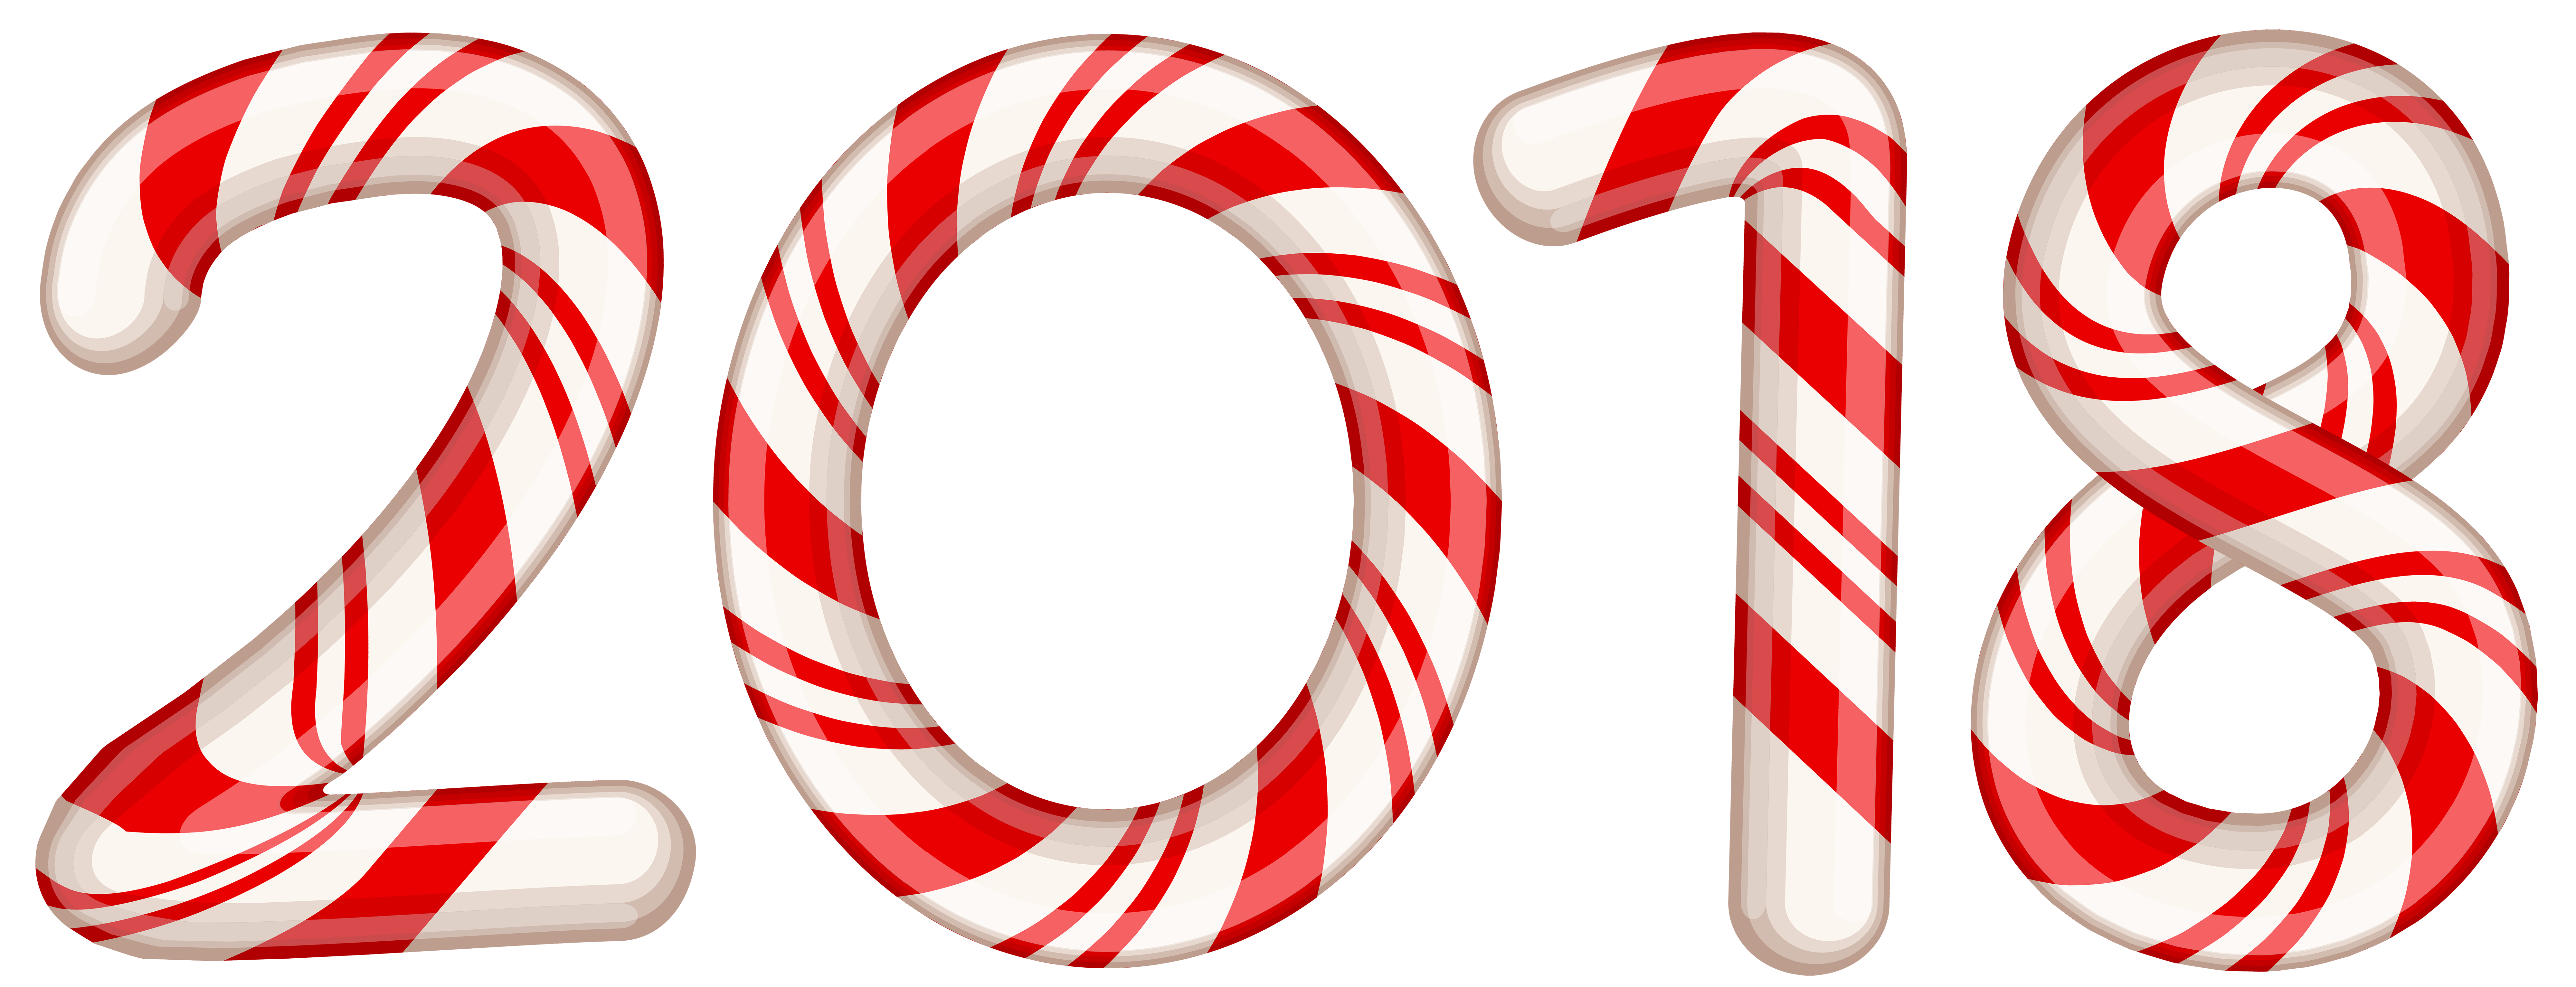 picture free  candy cane red. Canes clipart cand.